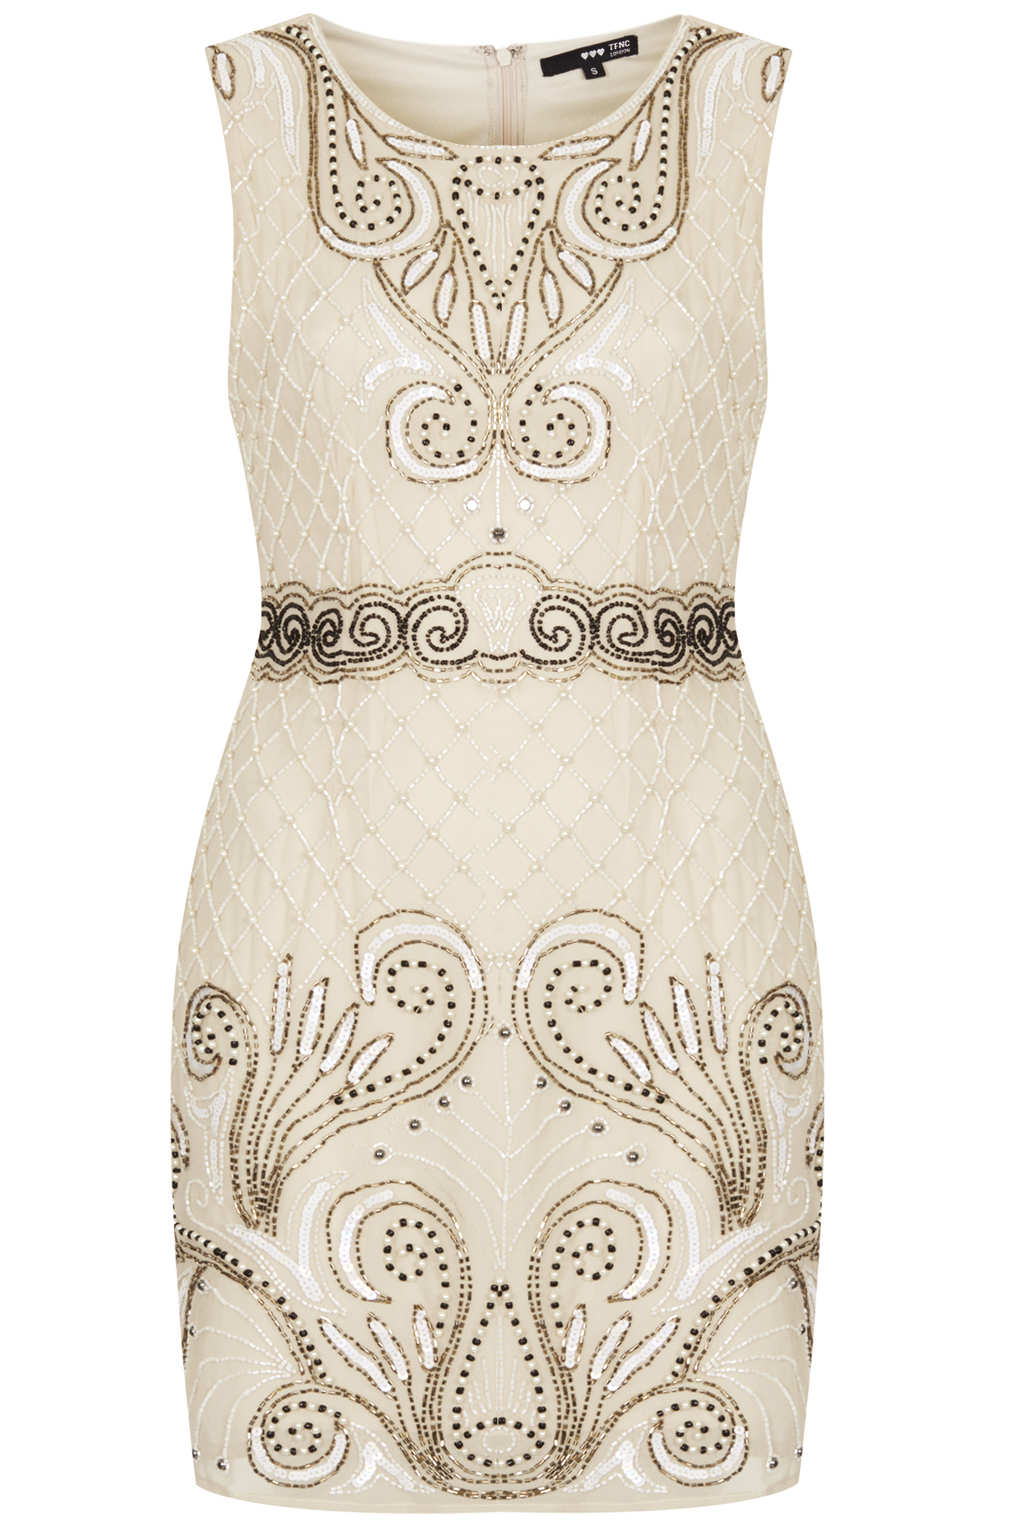 TOPSHOP Embellished Dress in Natural - Lyst be6b3b202